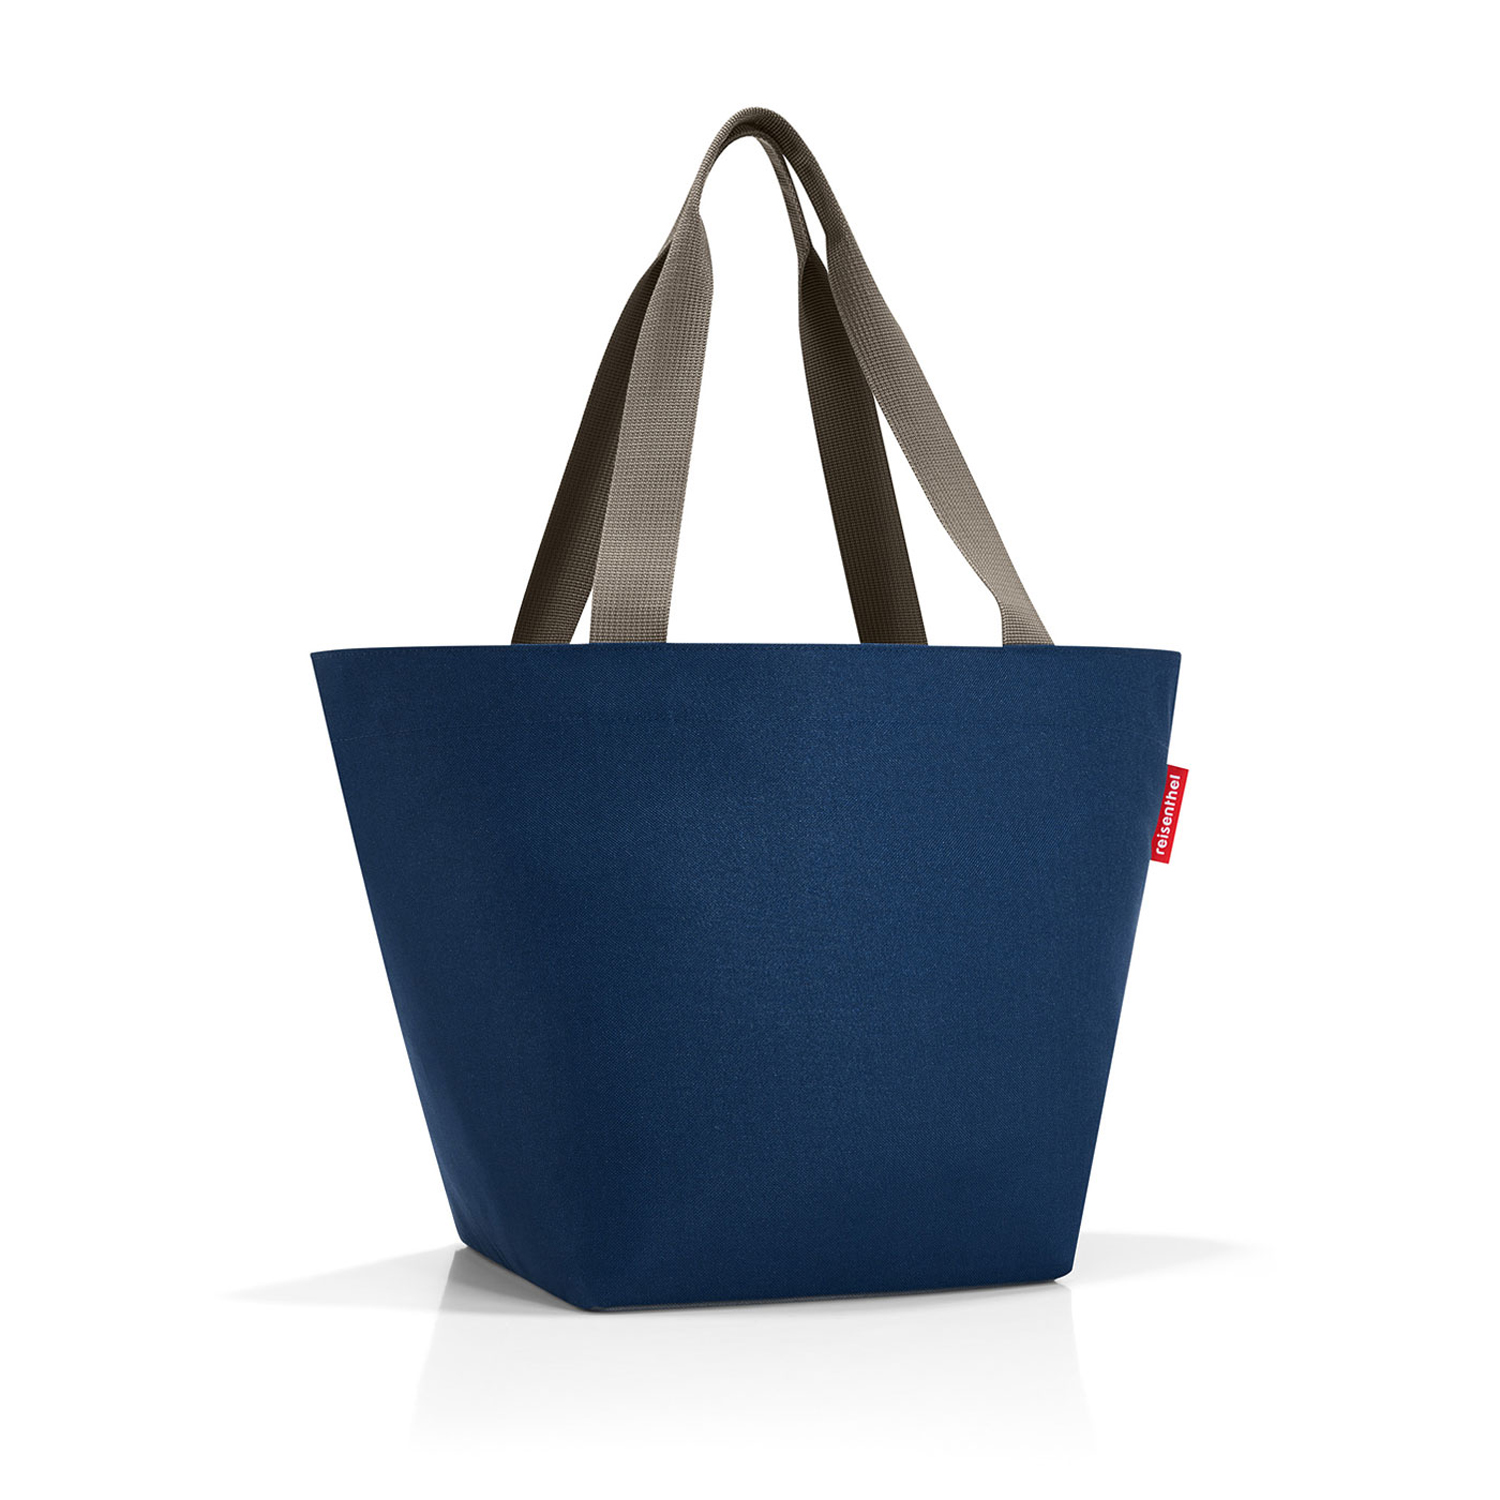 Reisenthel Shopper M Dark Blue (dunkelblau)